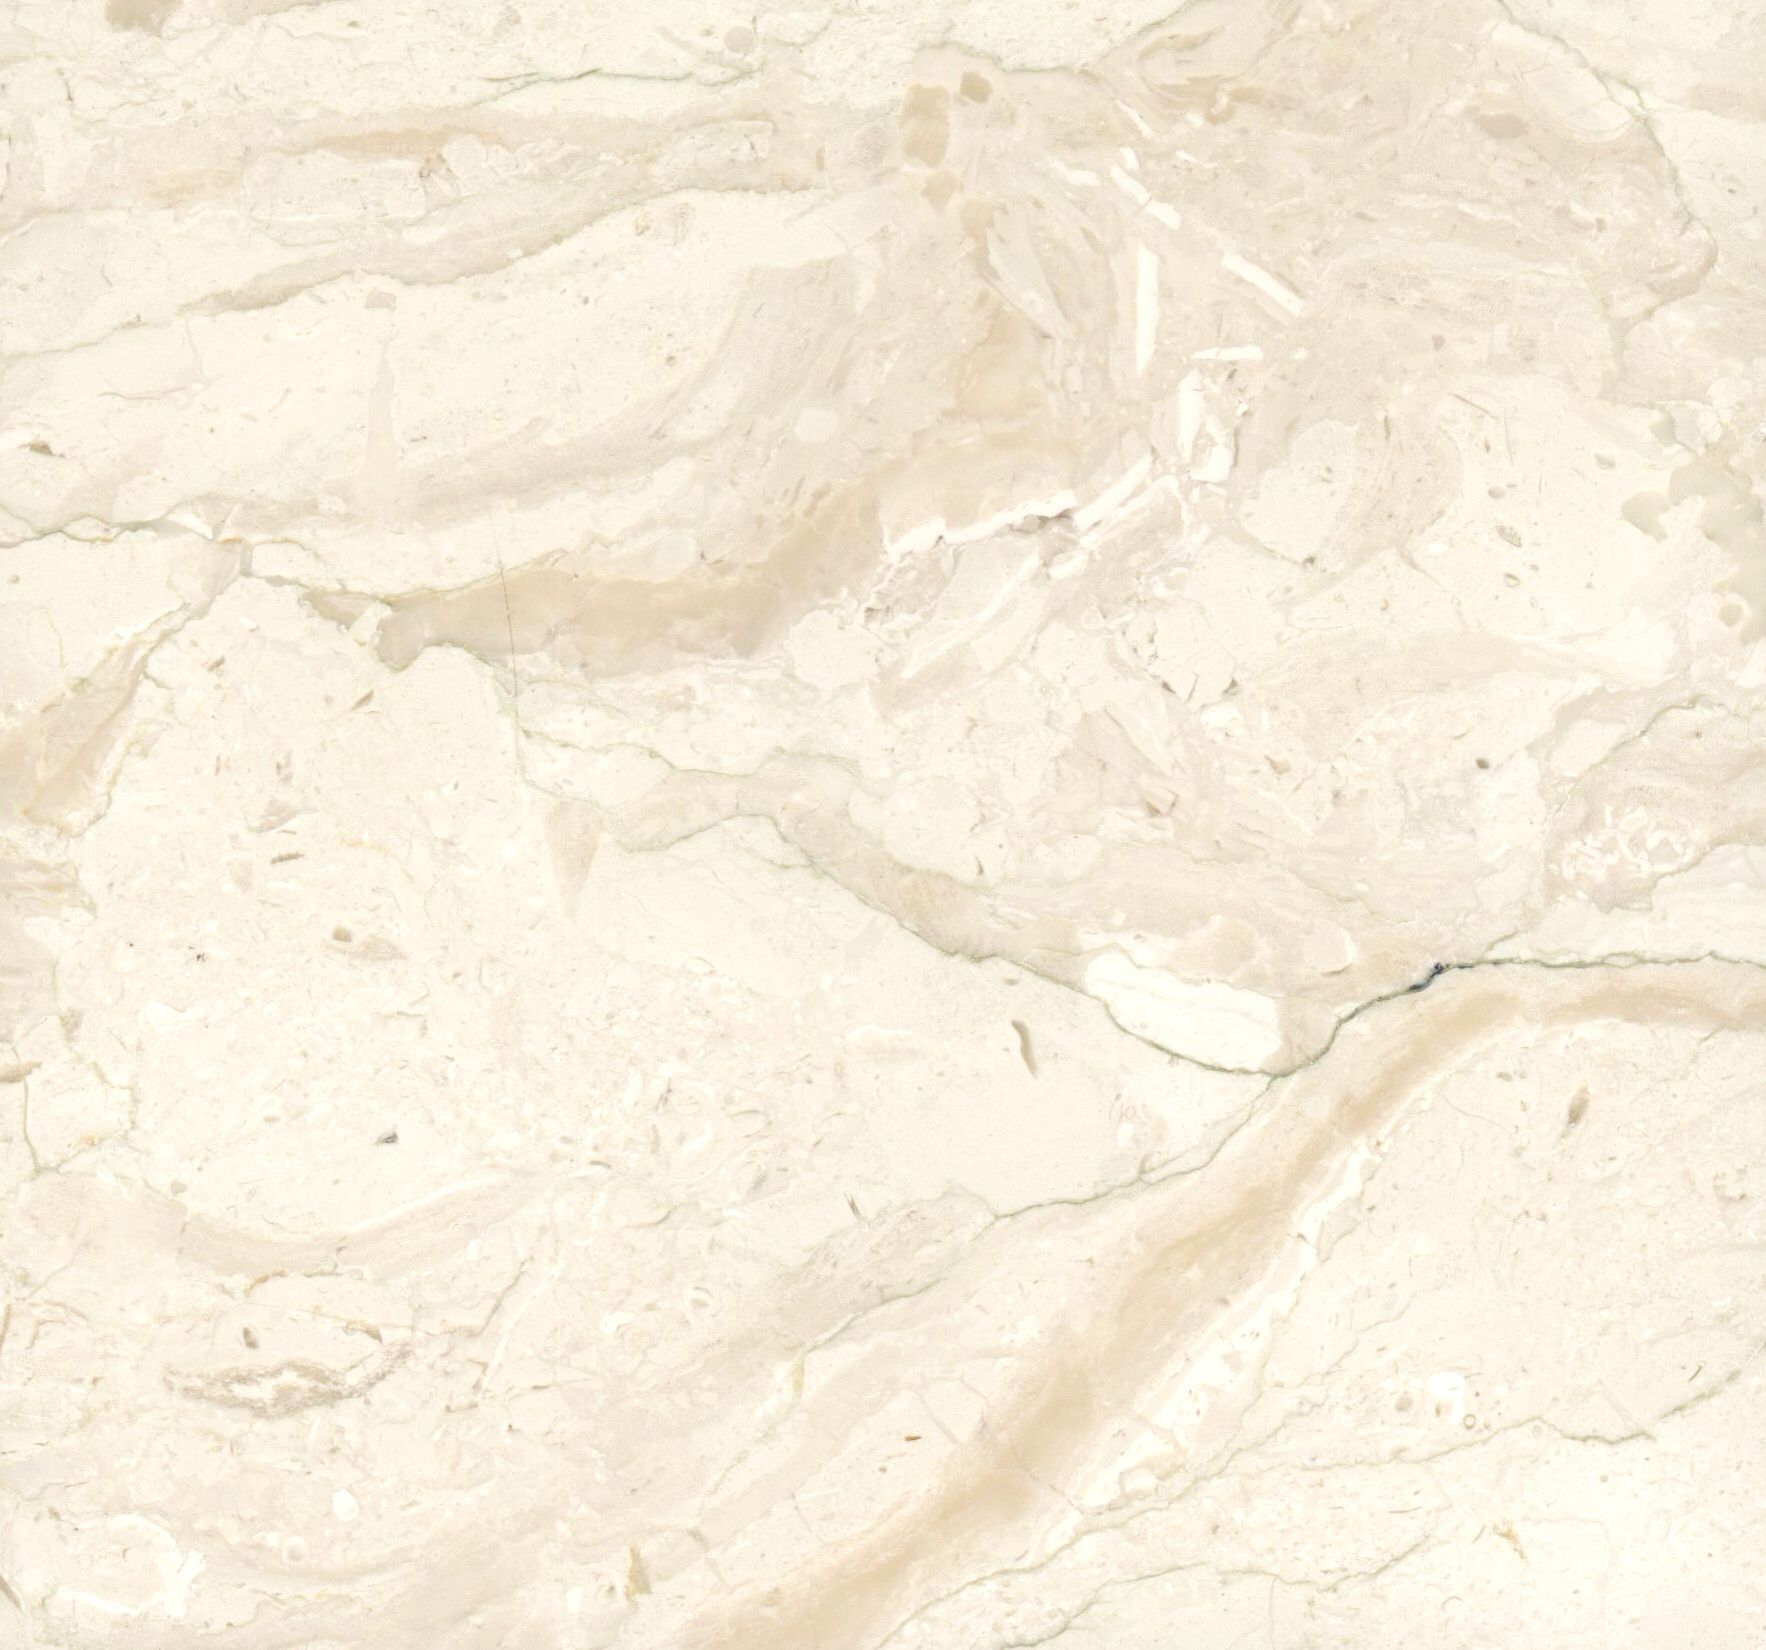 Yellow Marble, Beige Marble